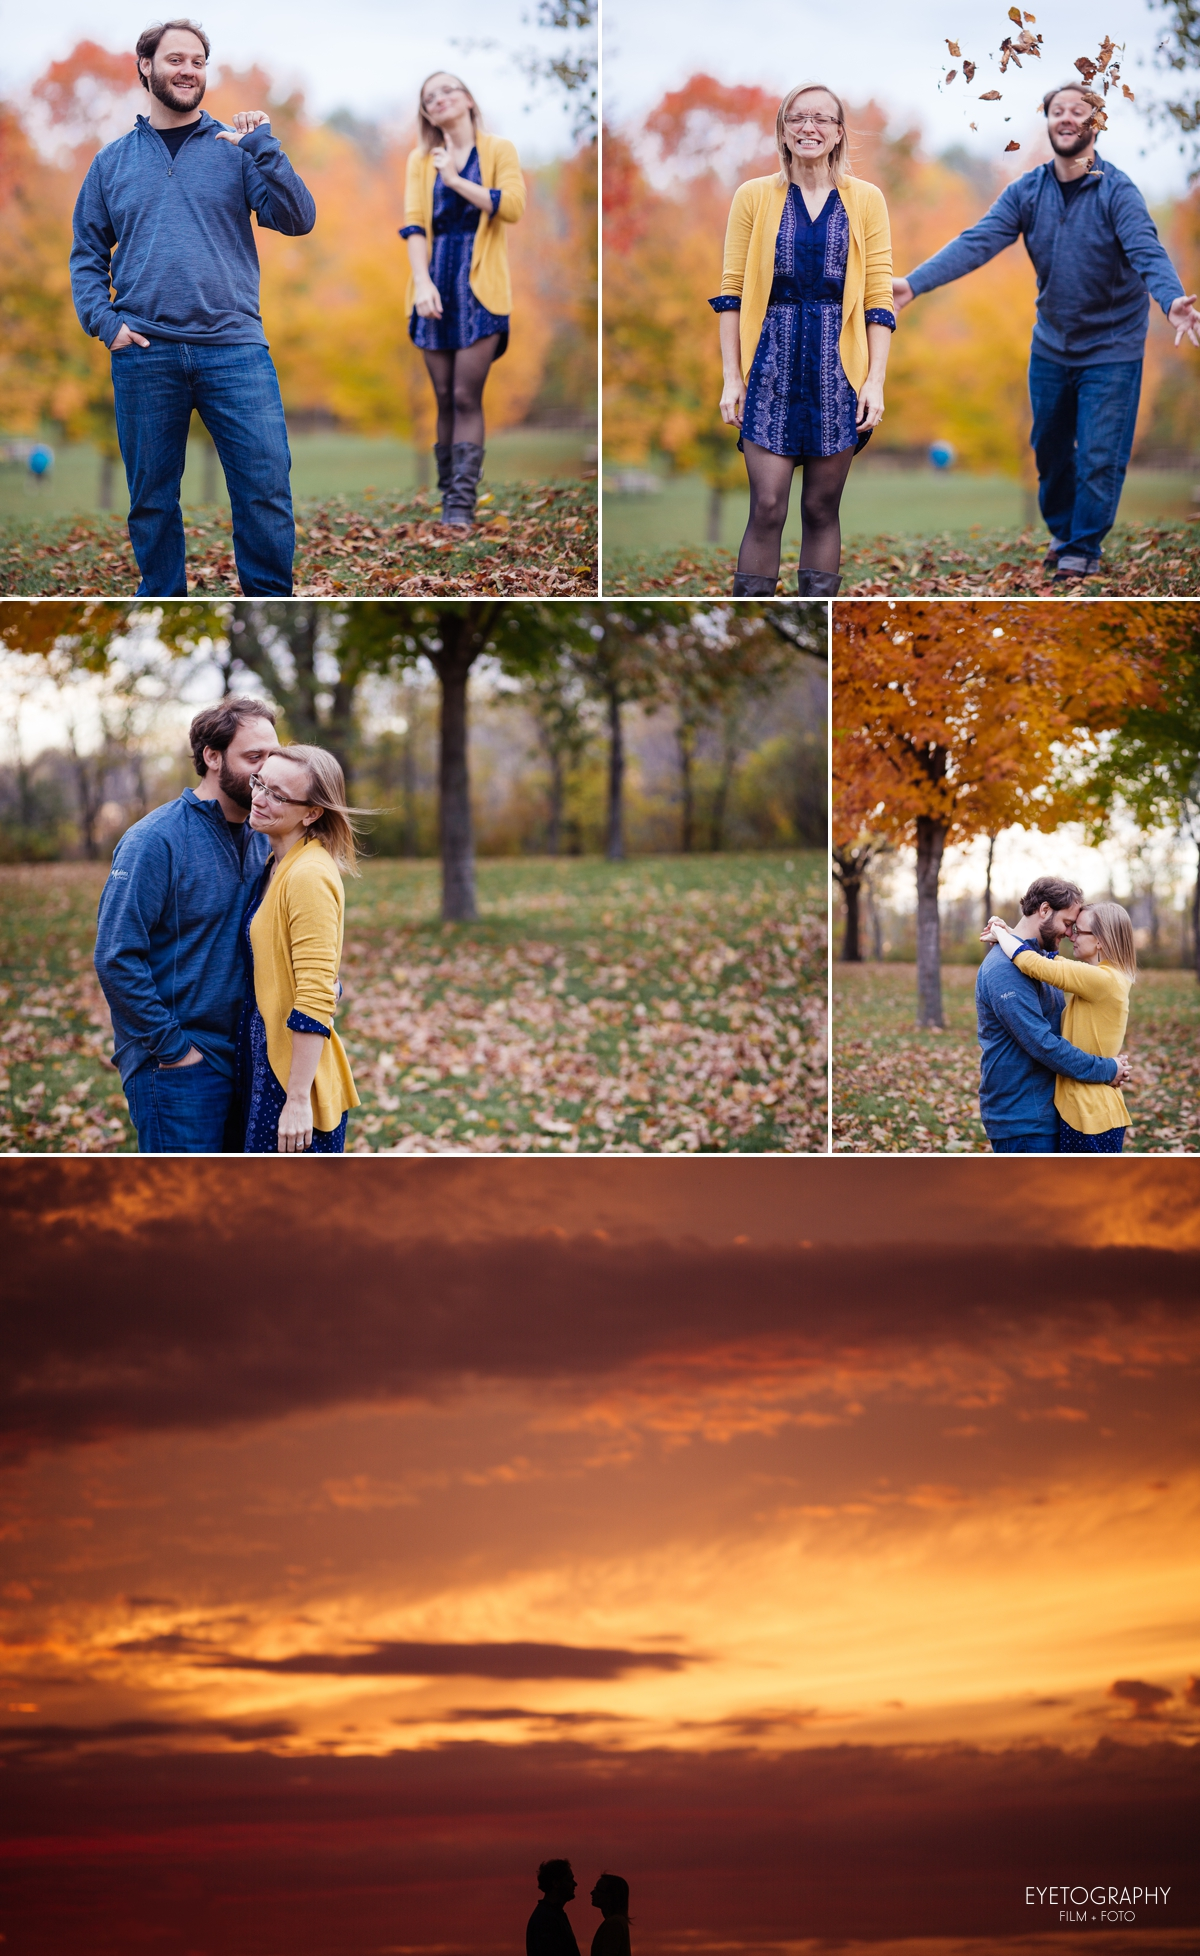 Minneapolis Minnesota Engagement Photography | Eyetography Film + Foto | Kayla + John 5